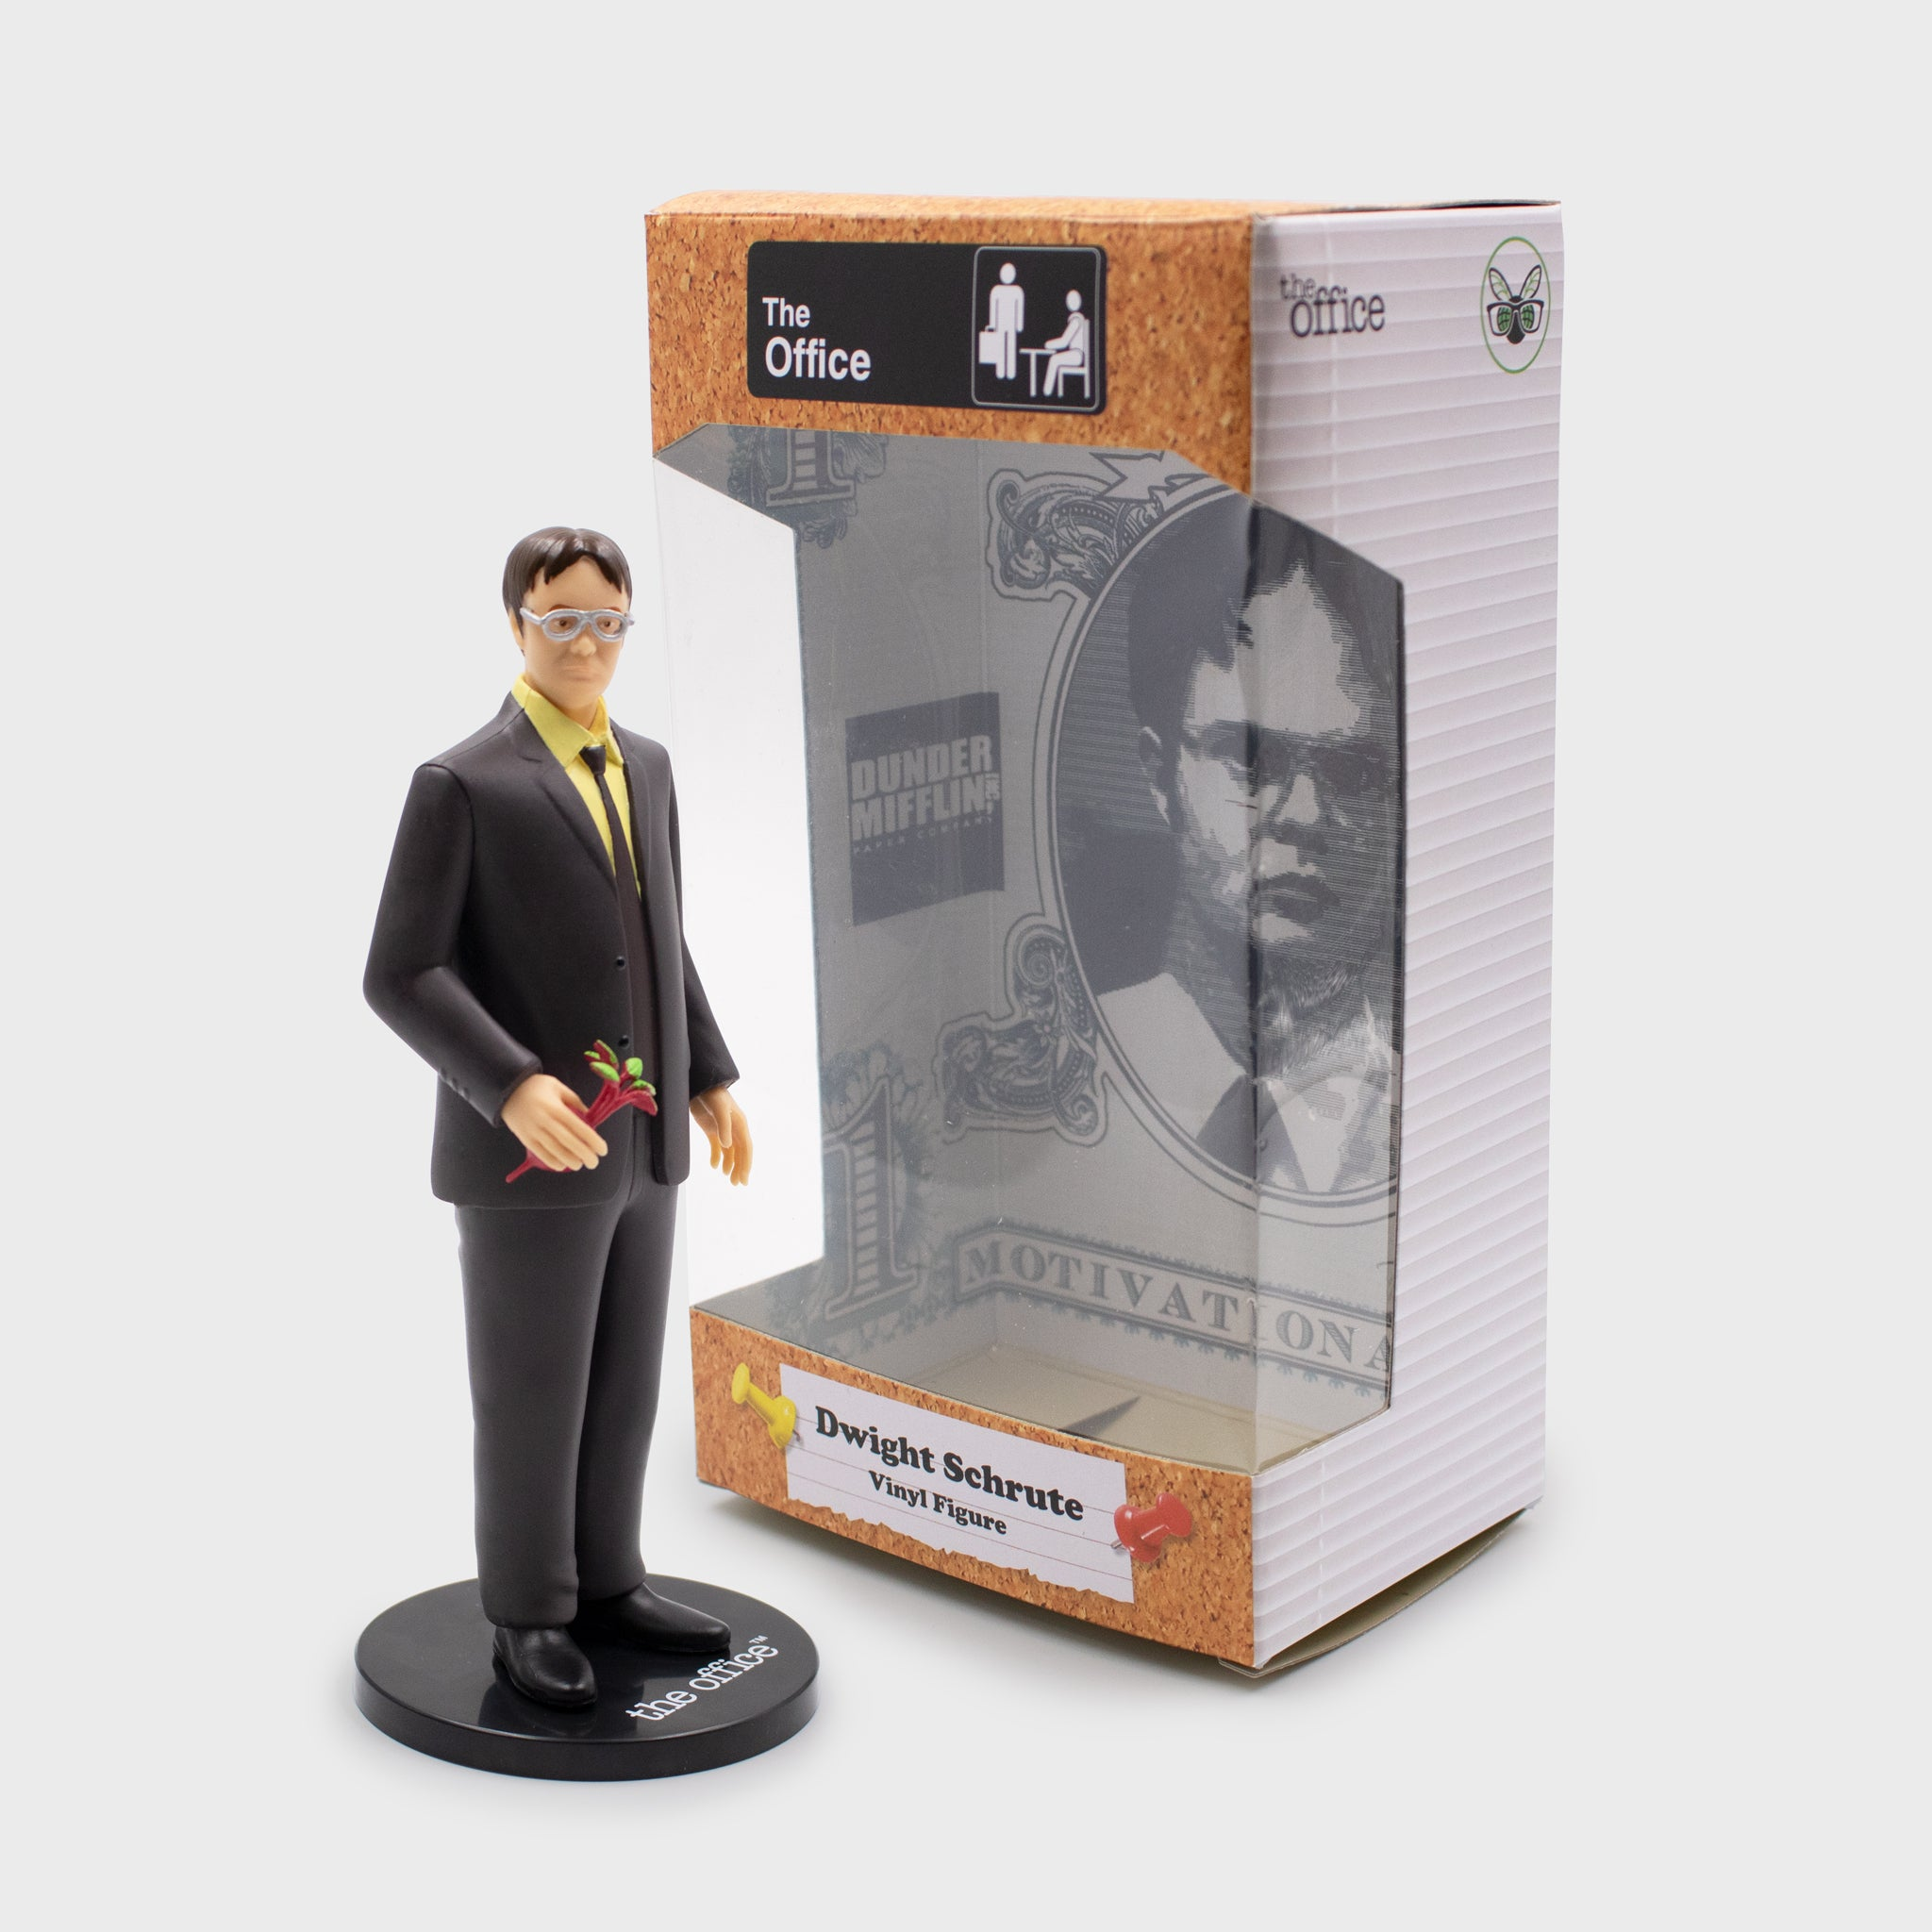 dwight schrute the office vinyl figure collectible exclusive dunder miffling nbc culturefly